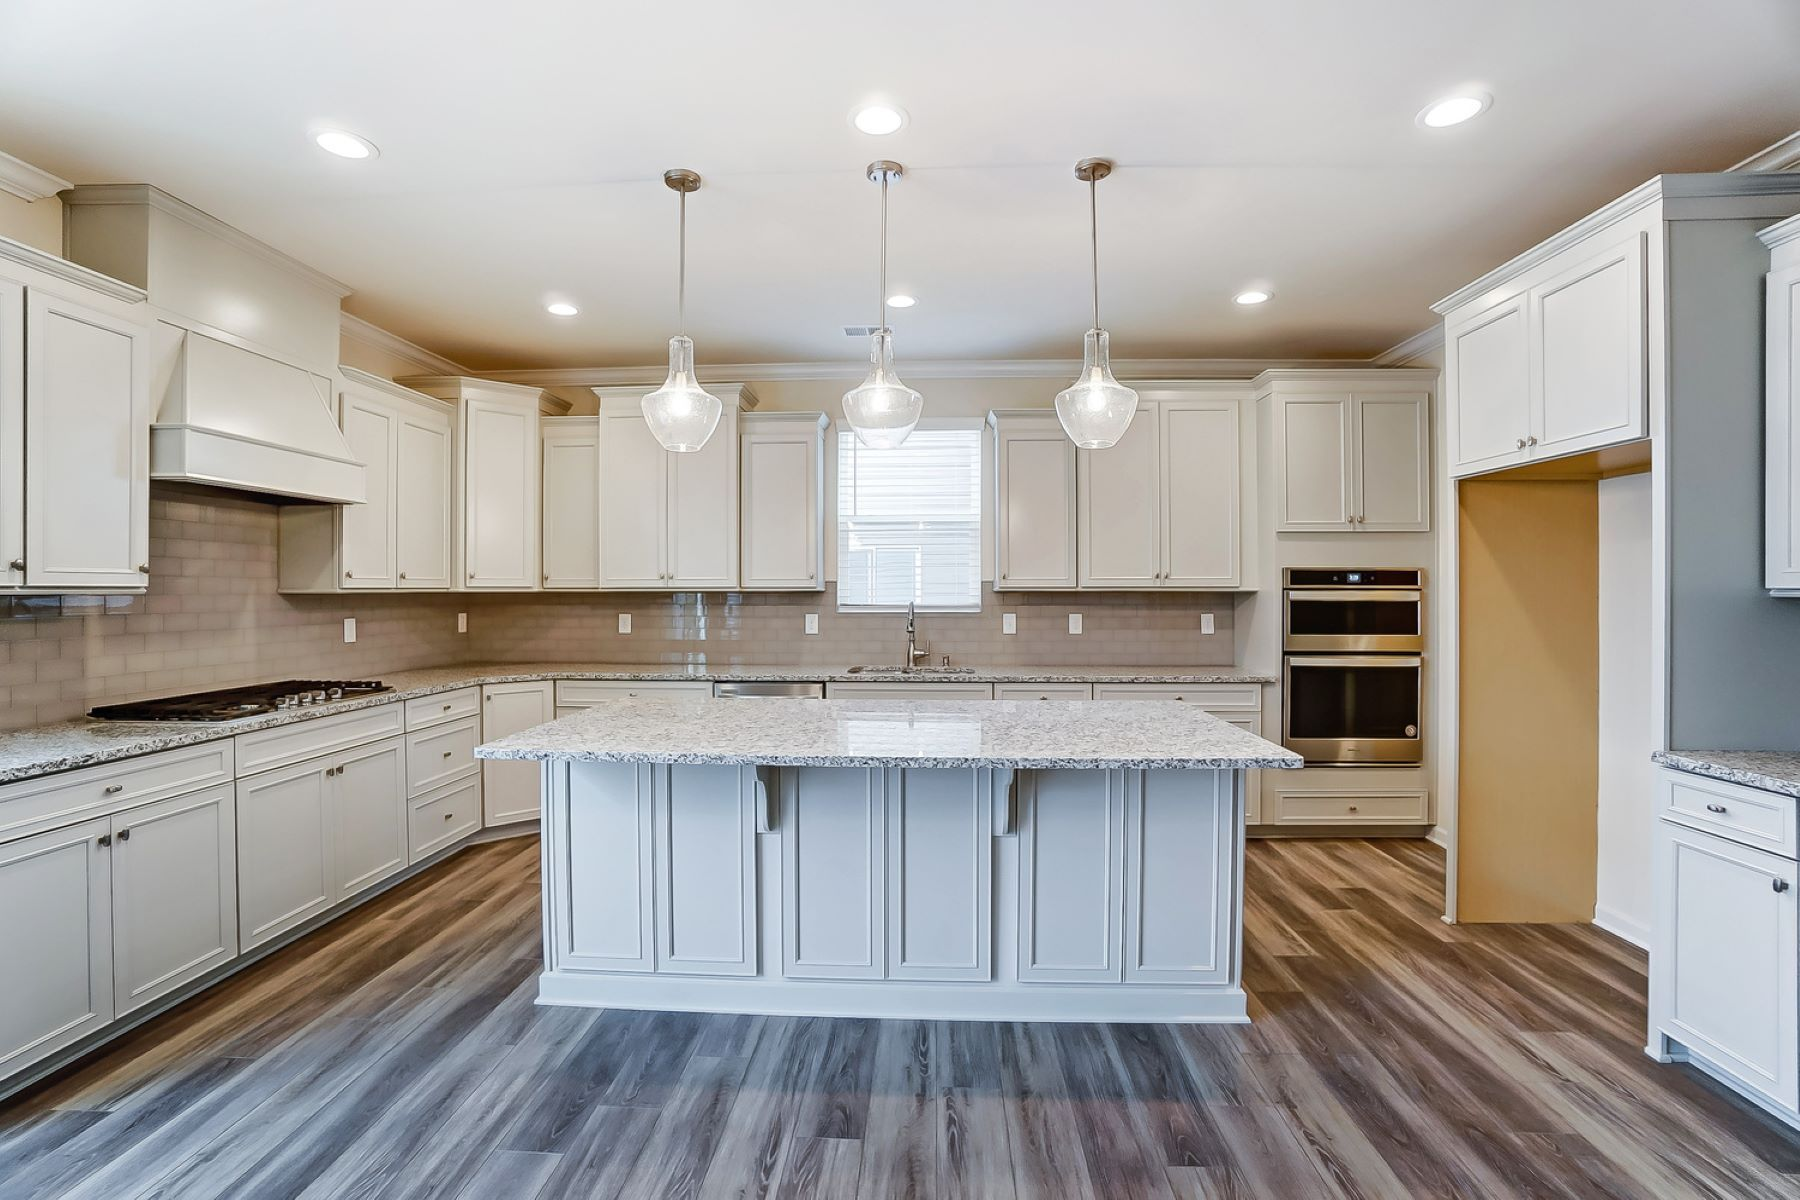 Kitchen featured in the Marshall By Mattamy Homes in Charlotte, NC